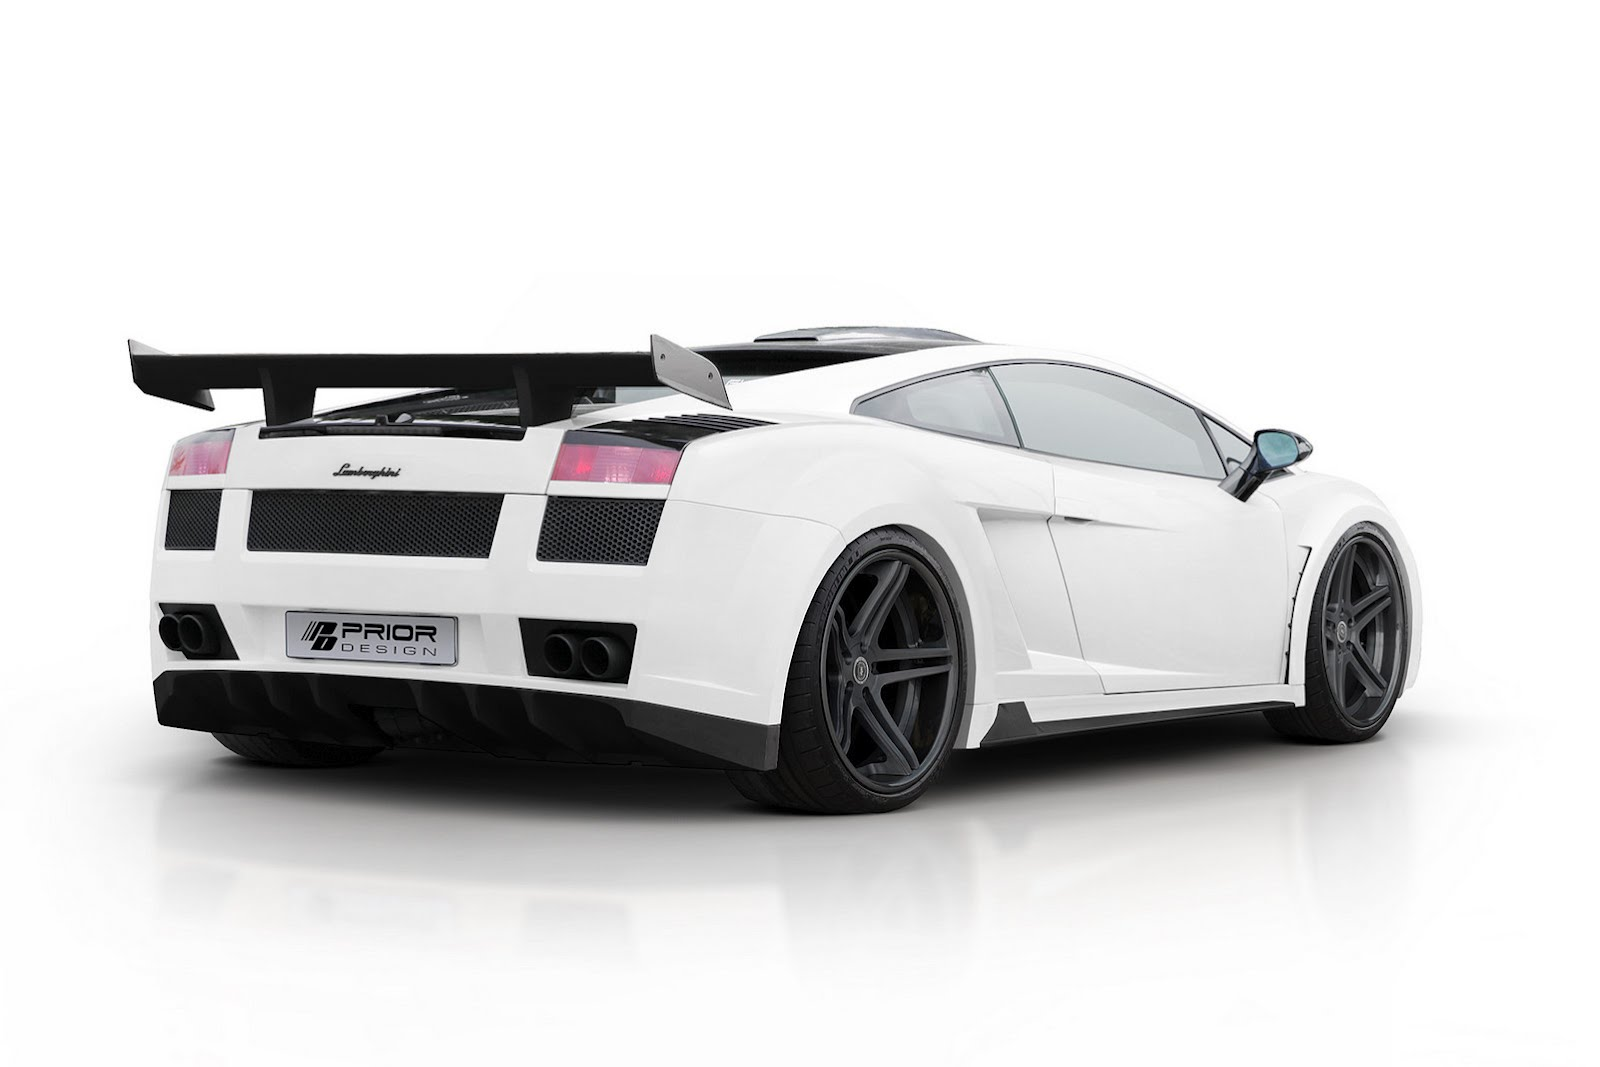 Lamborghini Gallardo by Prior Design